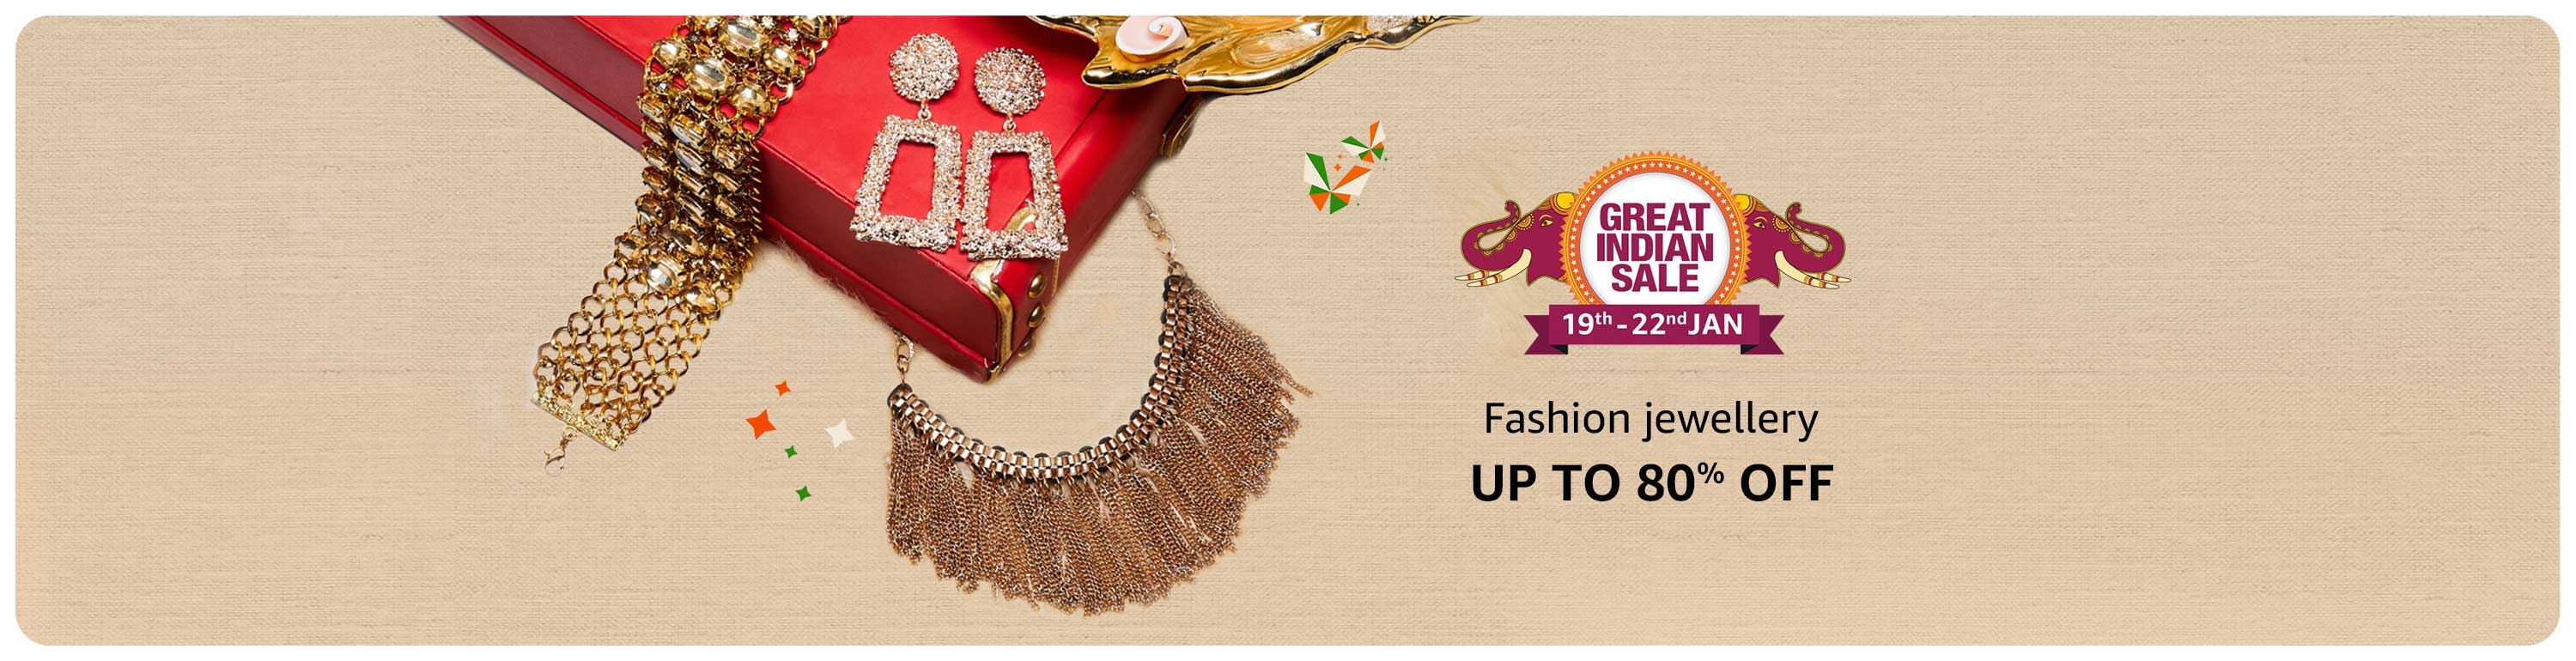 Upto 70% Off On Fashion Jewellery From Top Brands